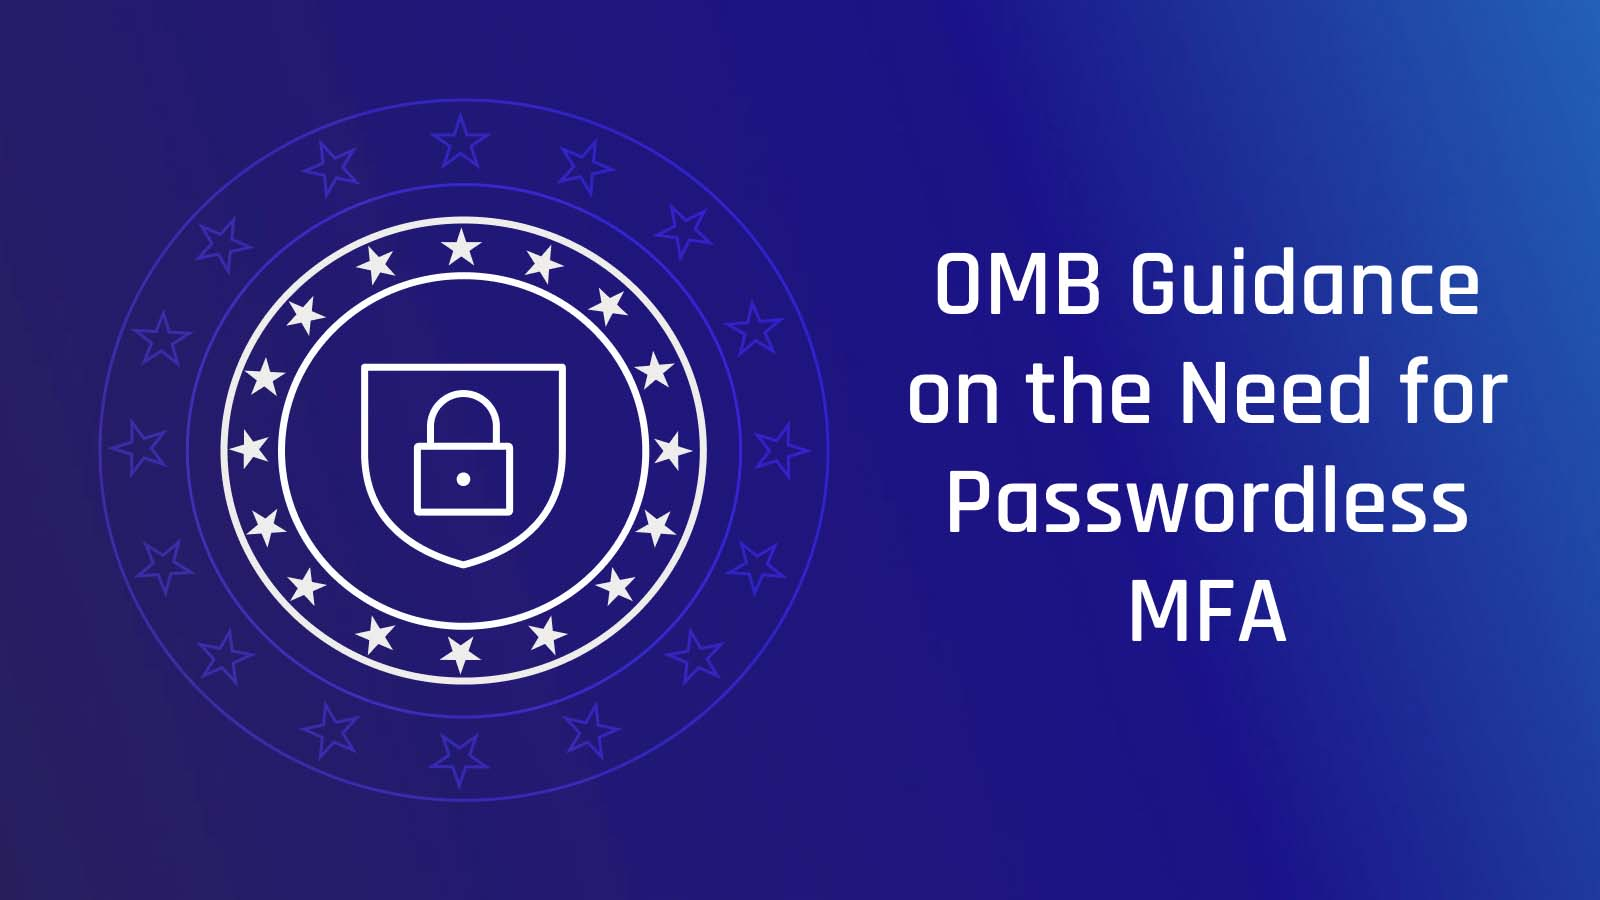 Image for OMB Guidance on the Need for Passwordless MFA